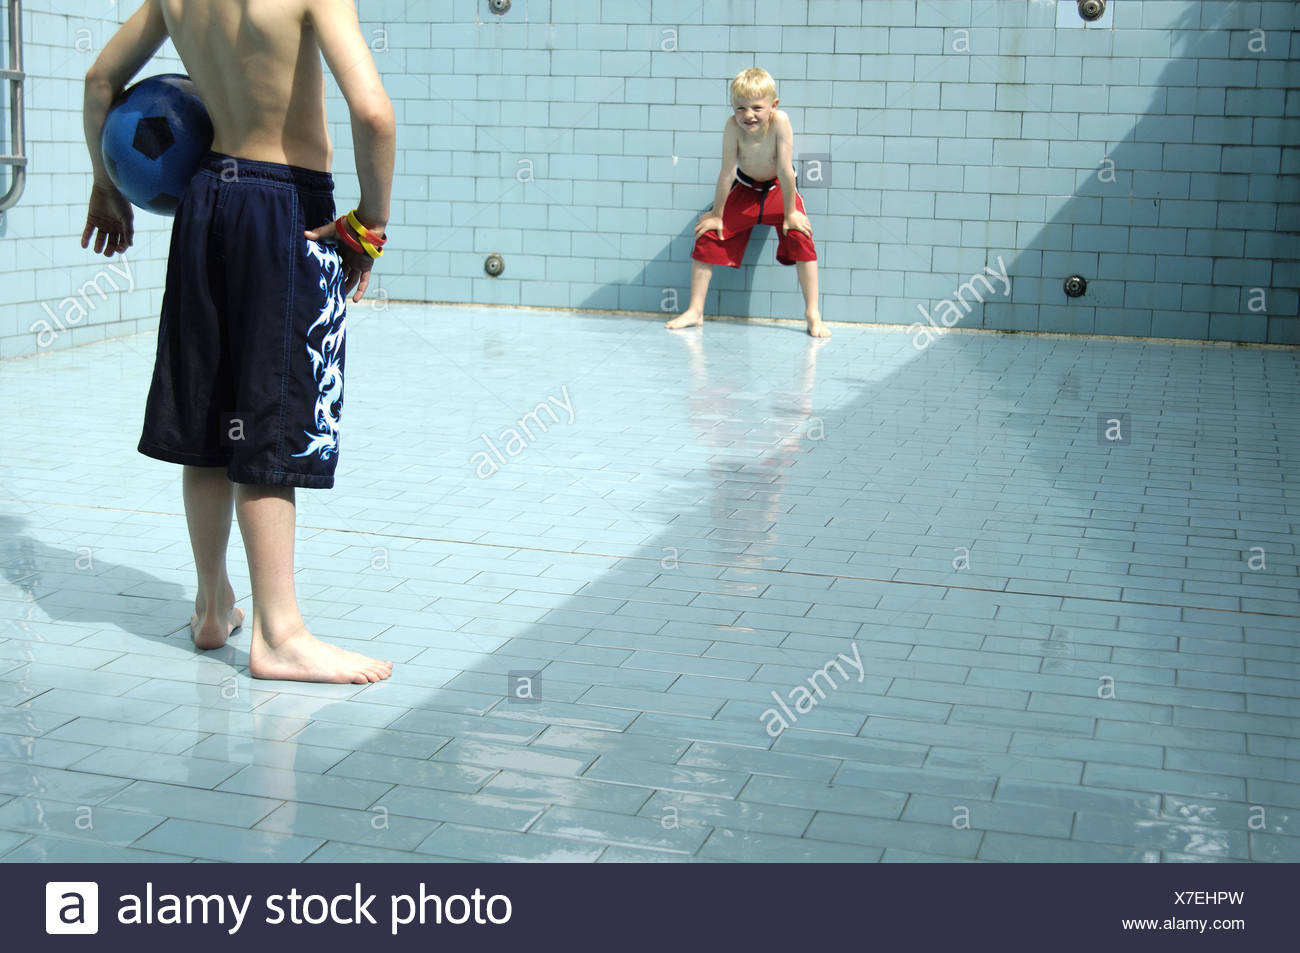 Pool empty children soccer games detail series people boys bath-clothing pools basin-ground tiles ball ball-game activity fun - Stock Image